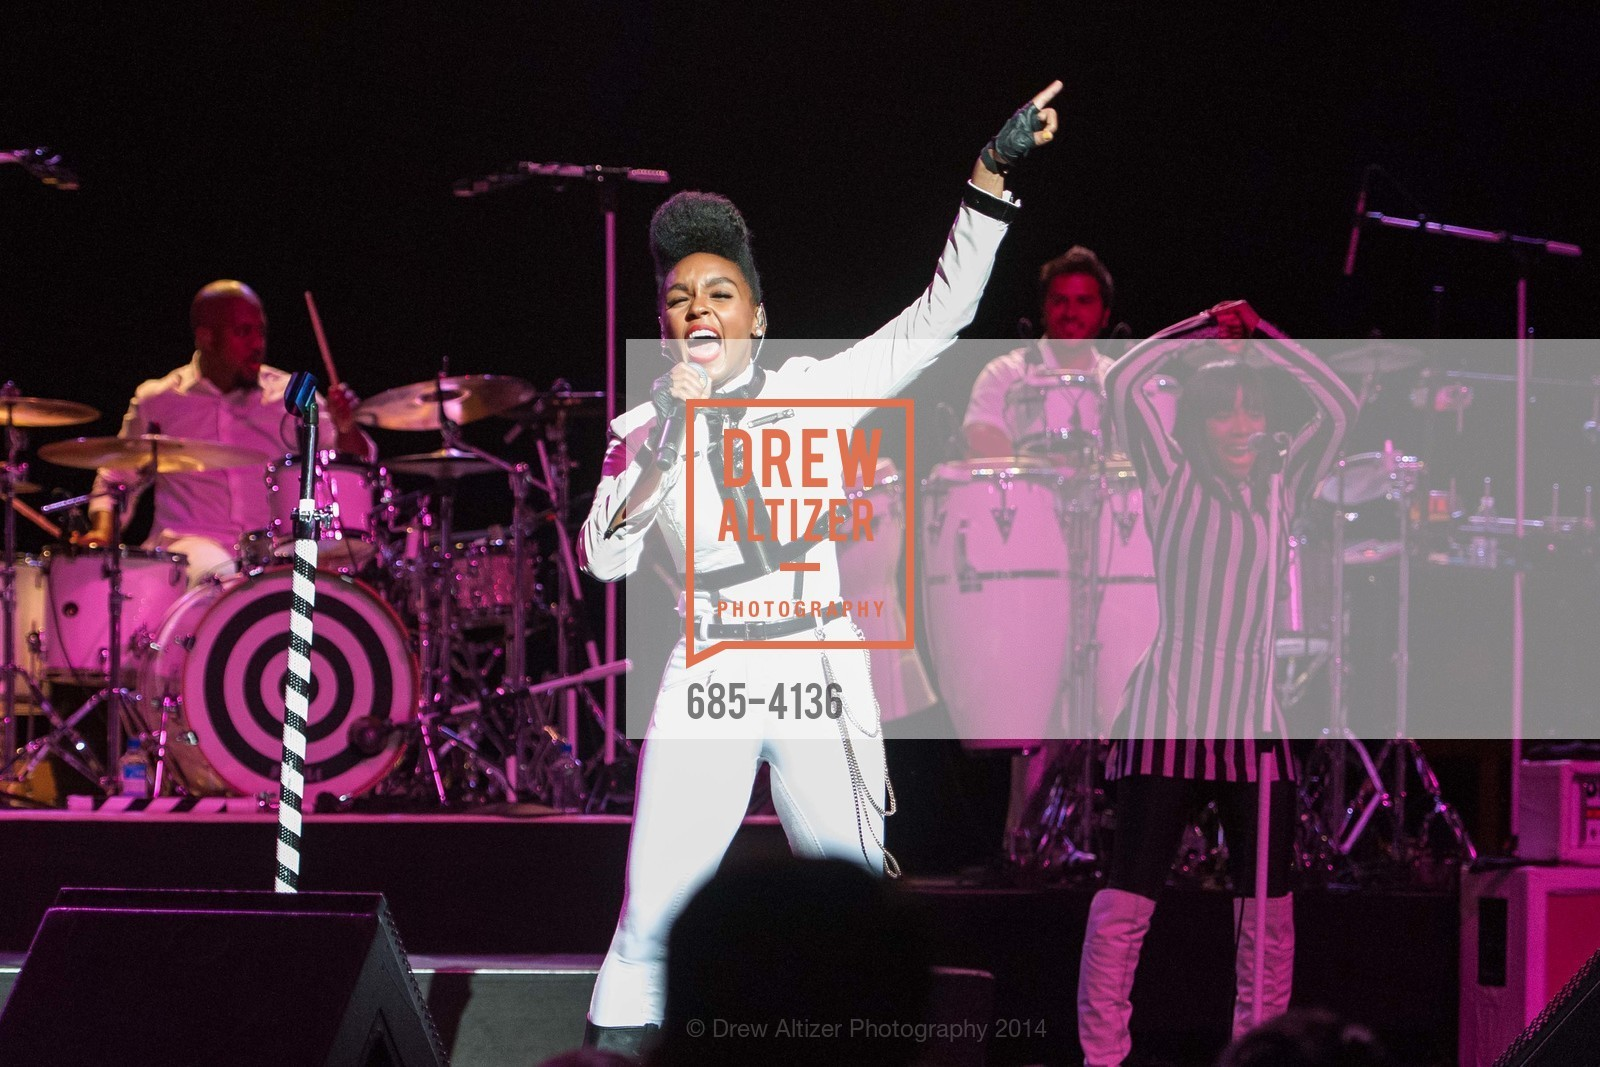 Performance By Janelle Monae, Photo #685-4136